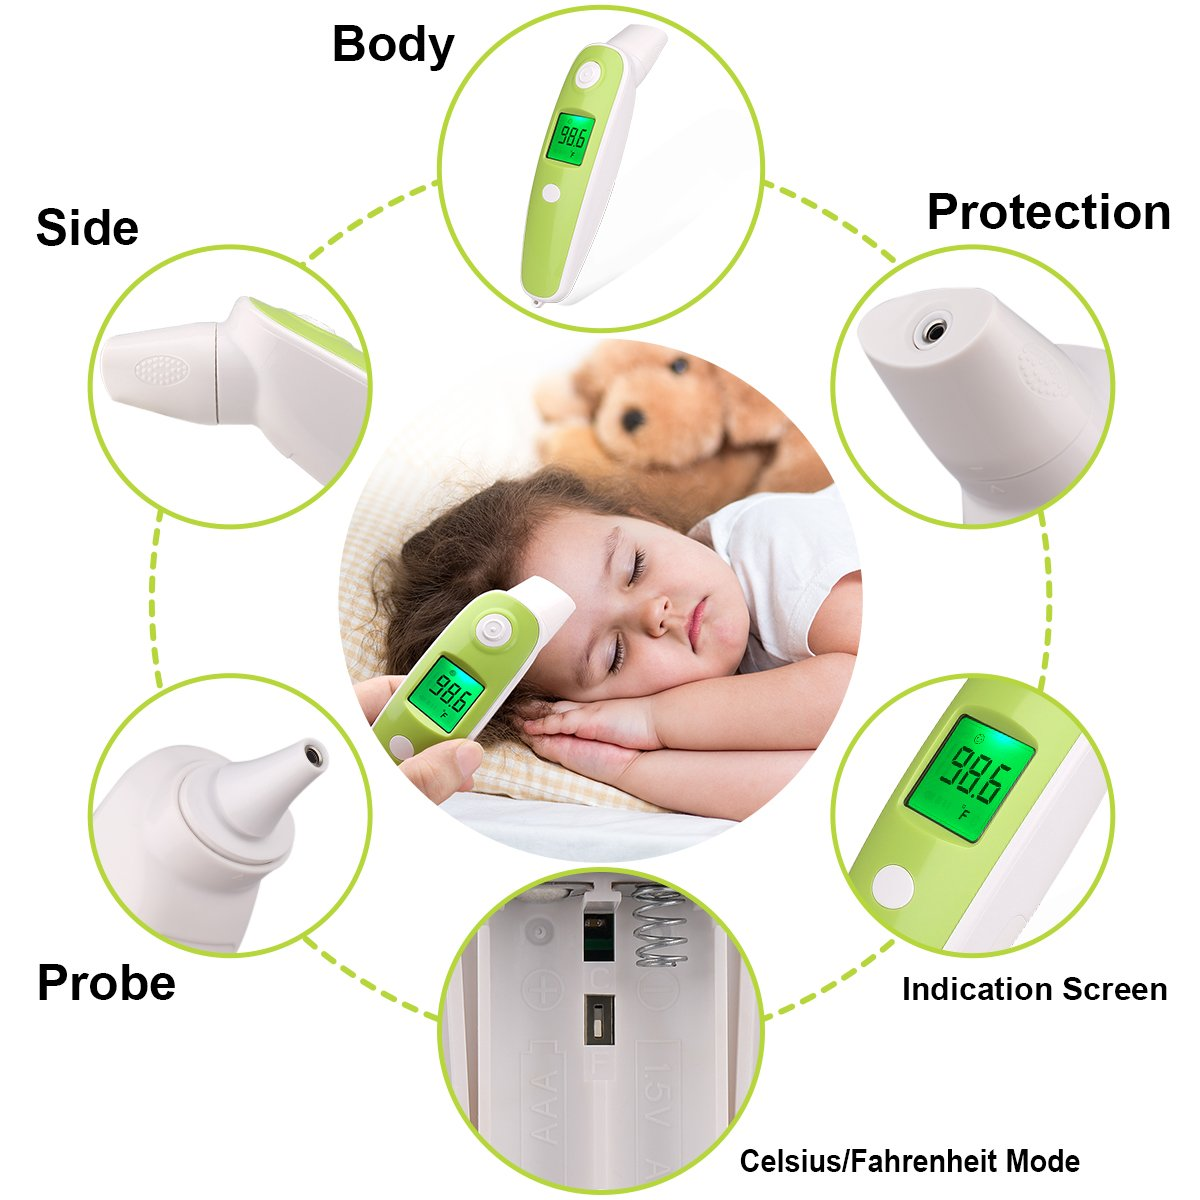 BuySevenSide Ear Thermometer with Forehead Function,Digital Laser Infrared Thermometer Temperature Gun Instant Read Accuracy Professional Temperature for Children and Adults with Fever Indicator by BuySevenSide (Image #8)